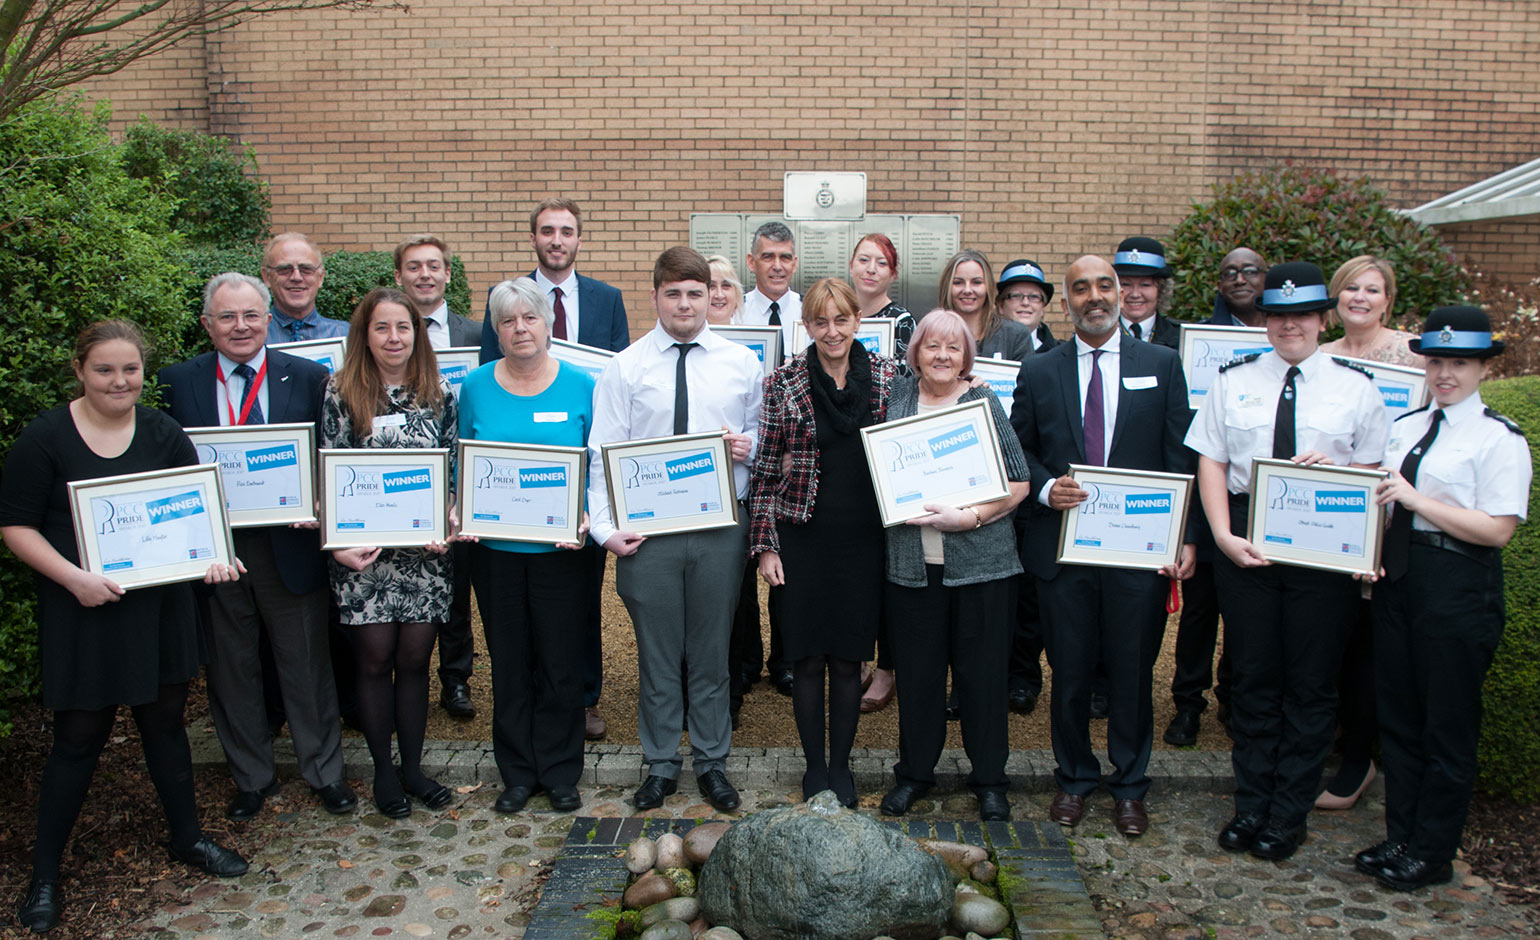 Hardworking and inspirational individuals recognised with PCC Pride Awards